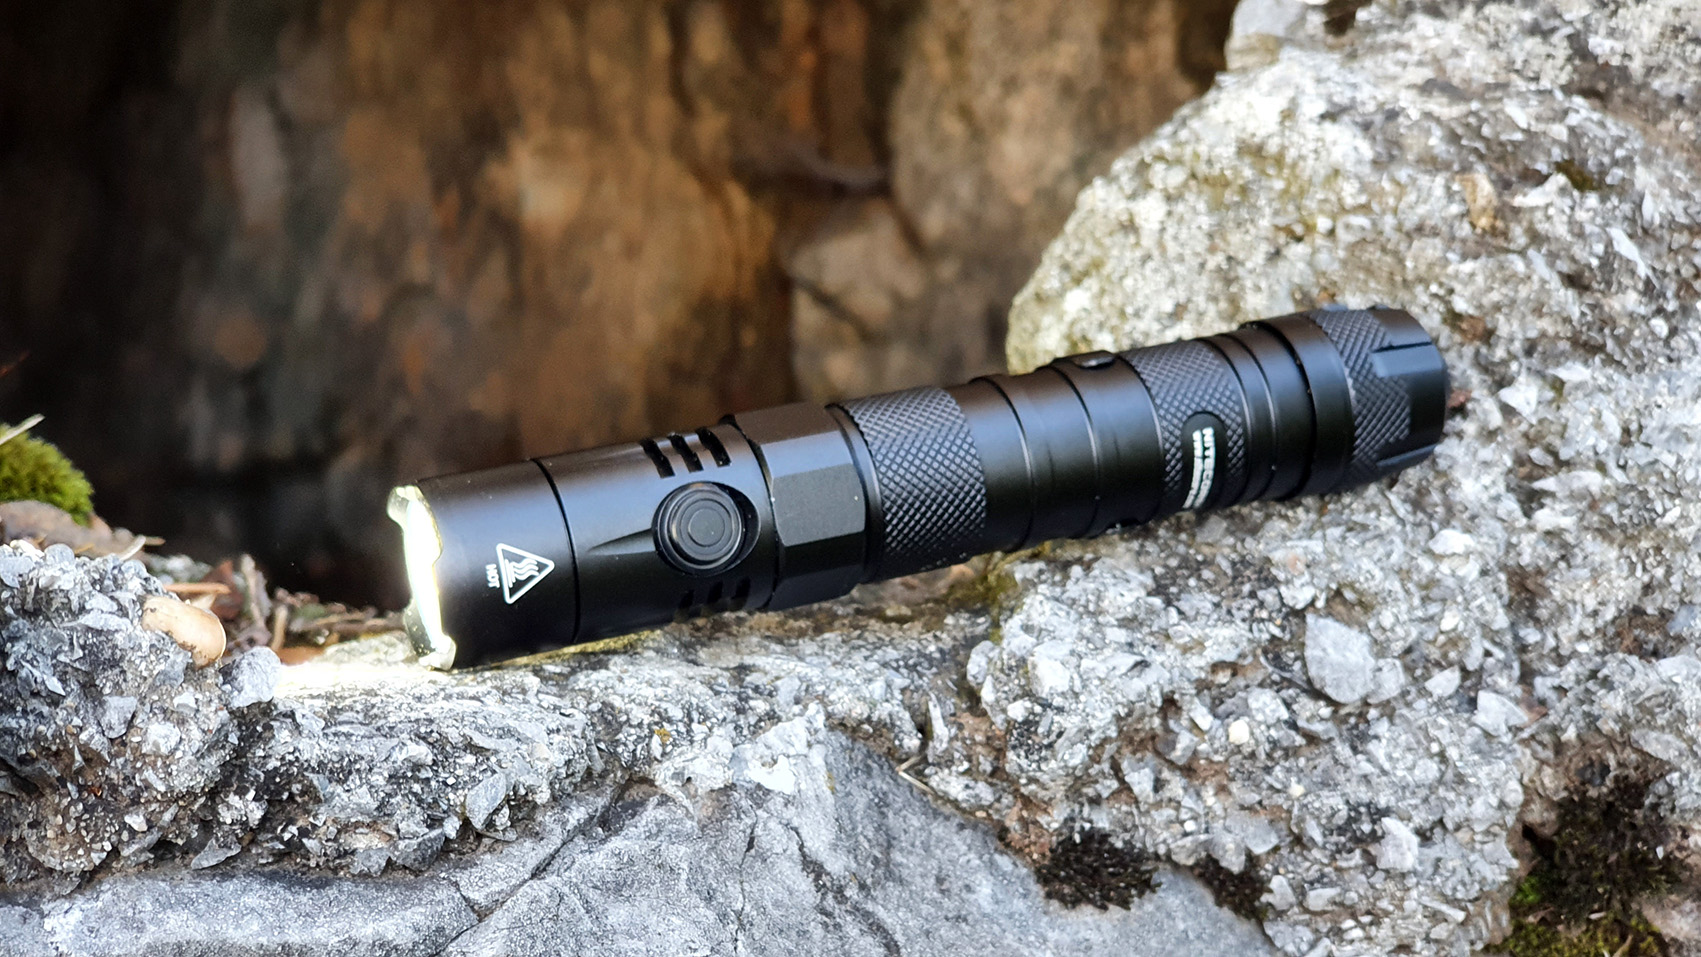 What's your frist impression of MH12 V2 flashlight?